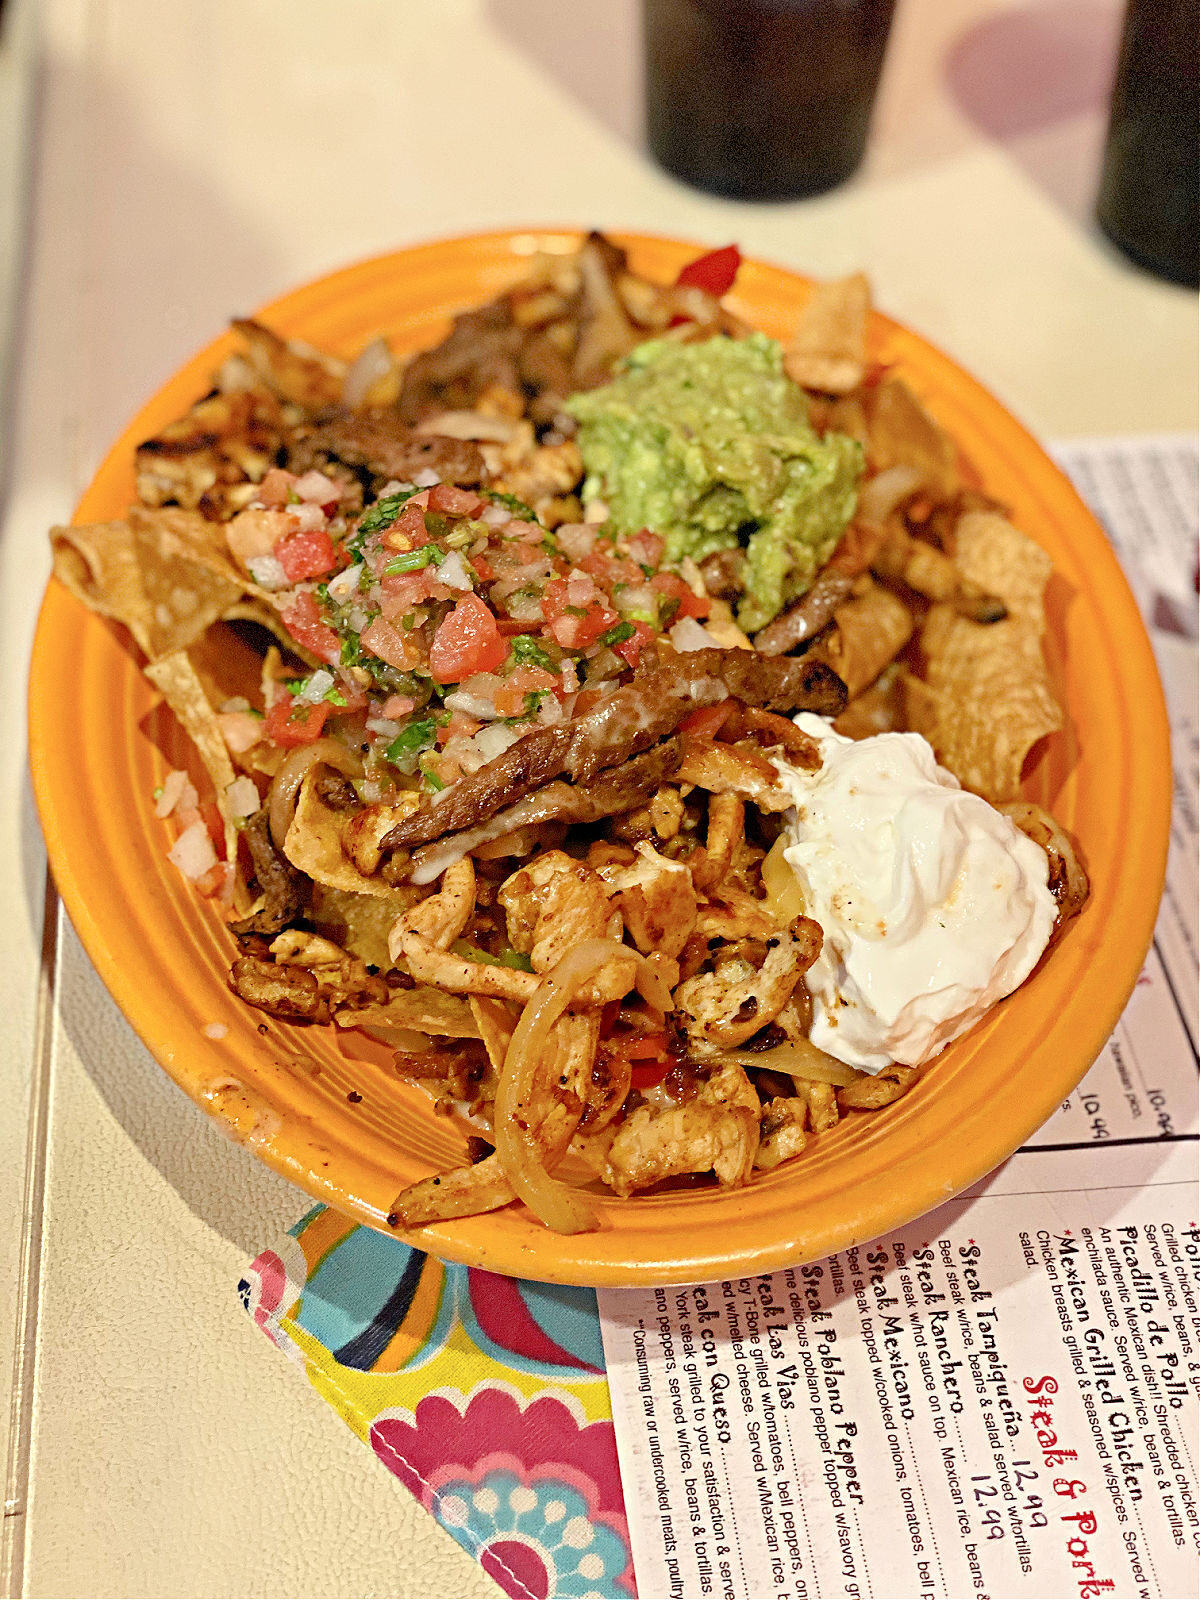 Plate of ultimate nachos with sour cream and guacamole.